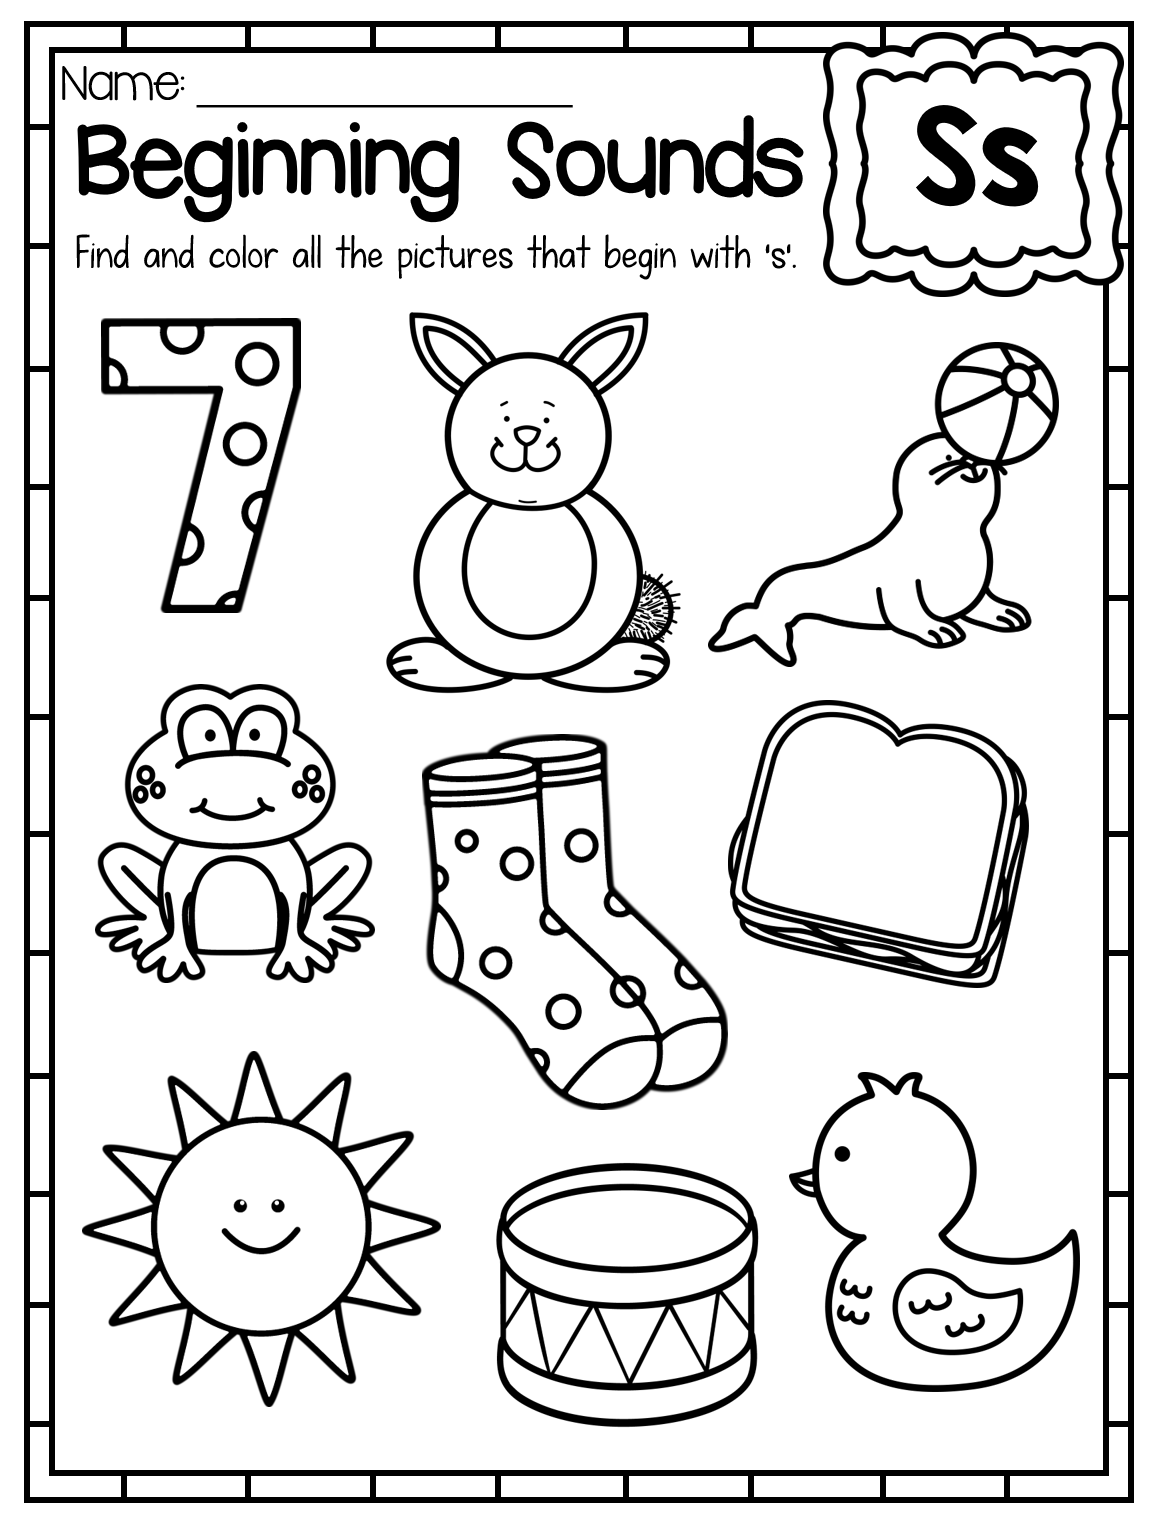 Beginning Sounds Worksheets - Color by Sound   Literacy ...